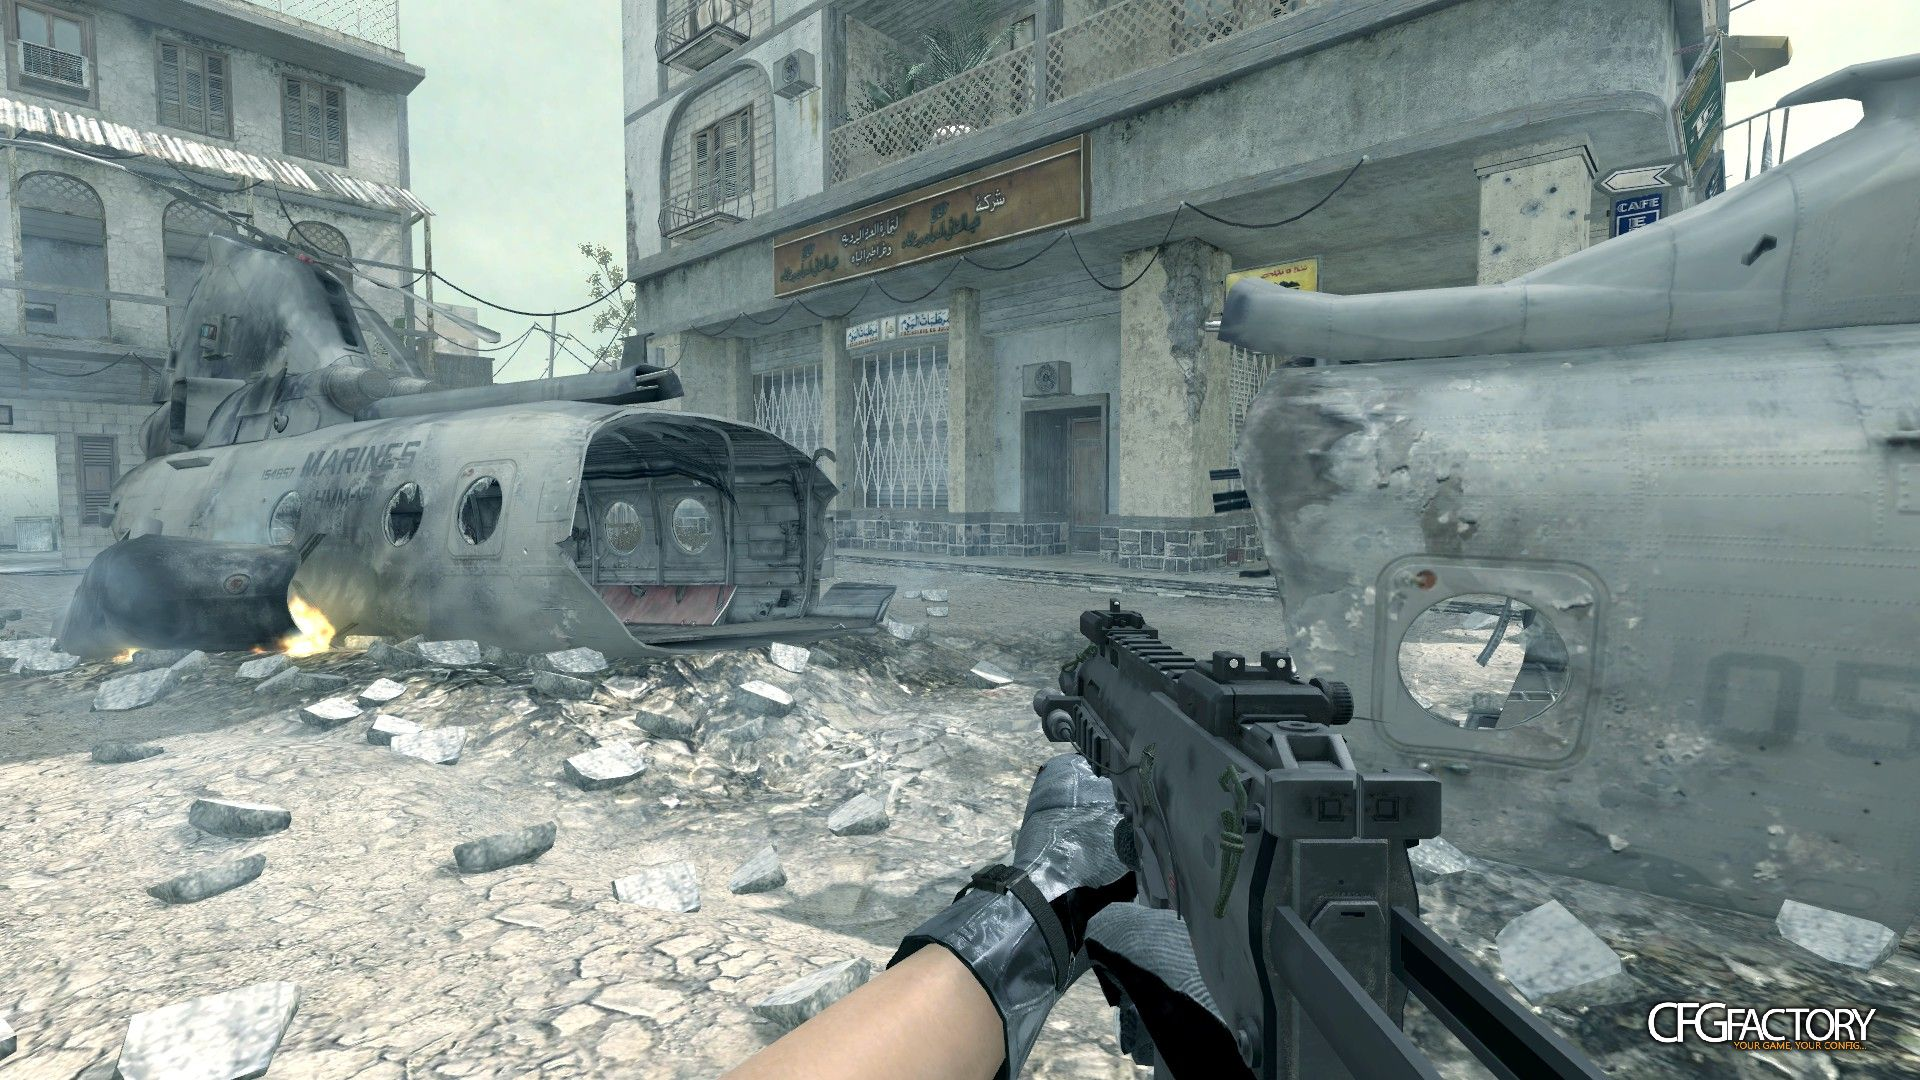 cod4, custom models, mw3 mp7, convictiondr